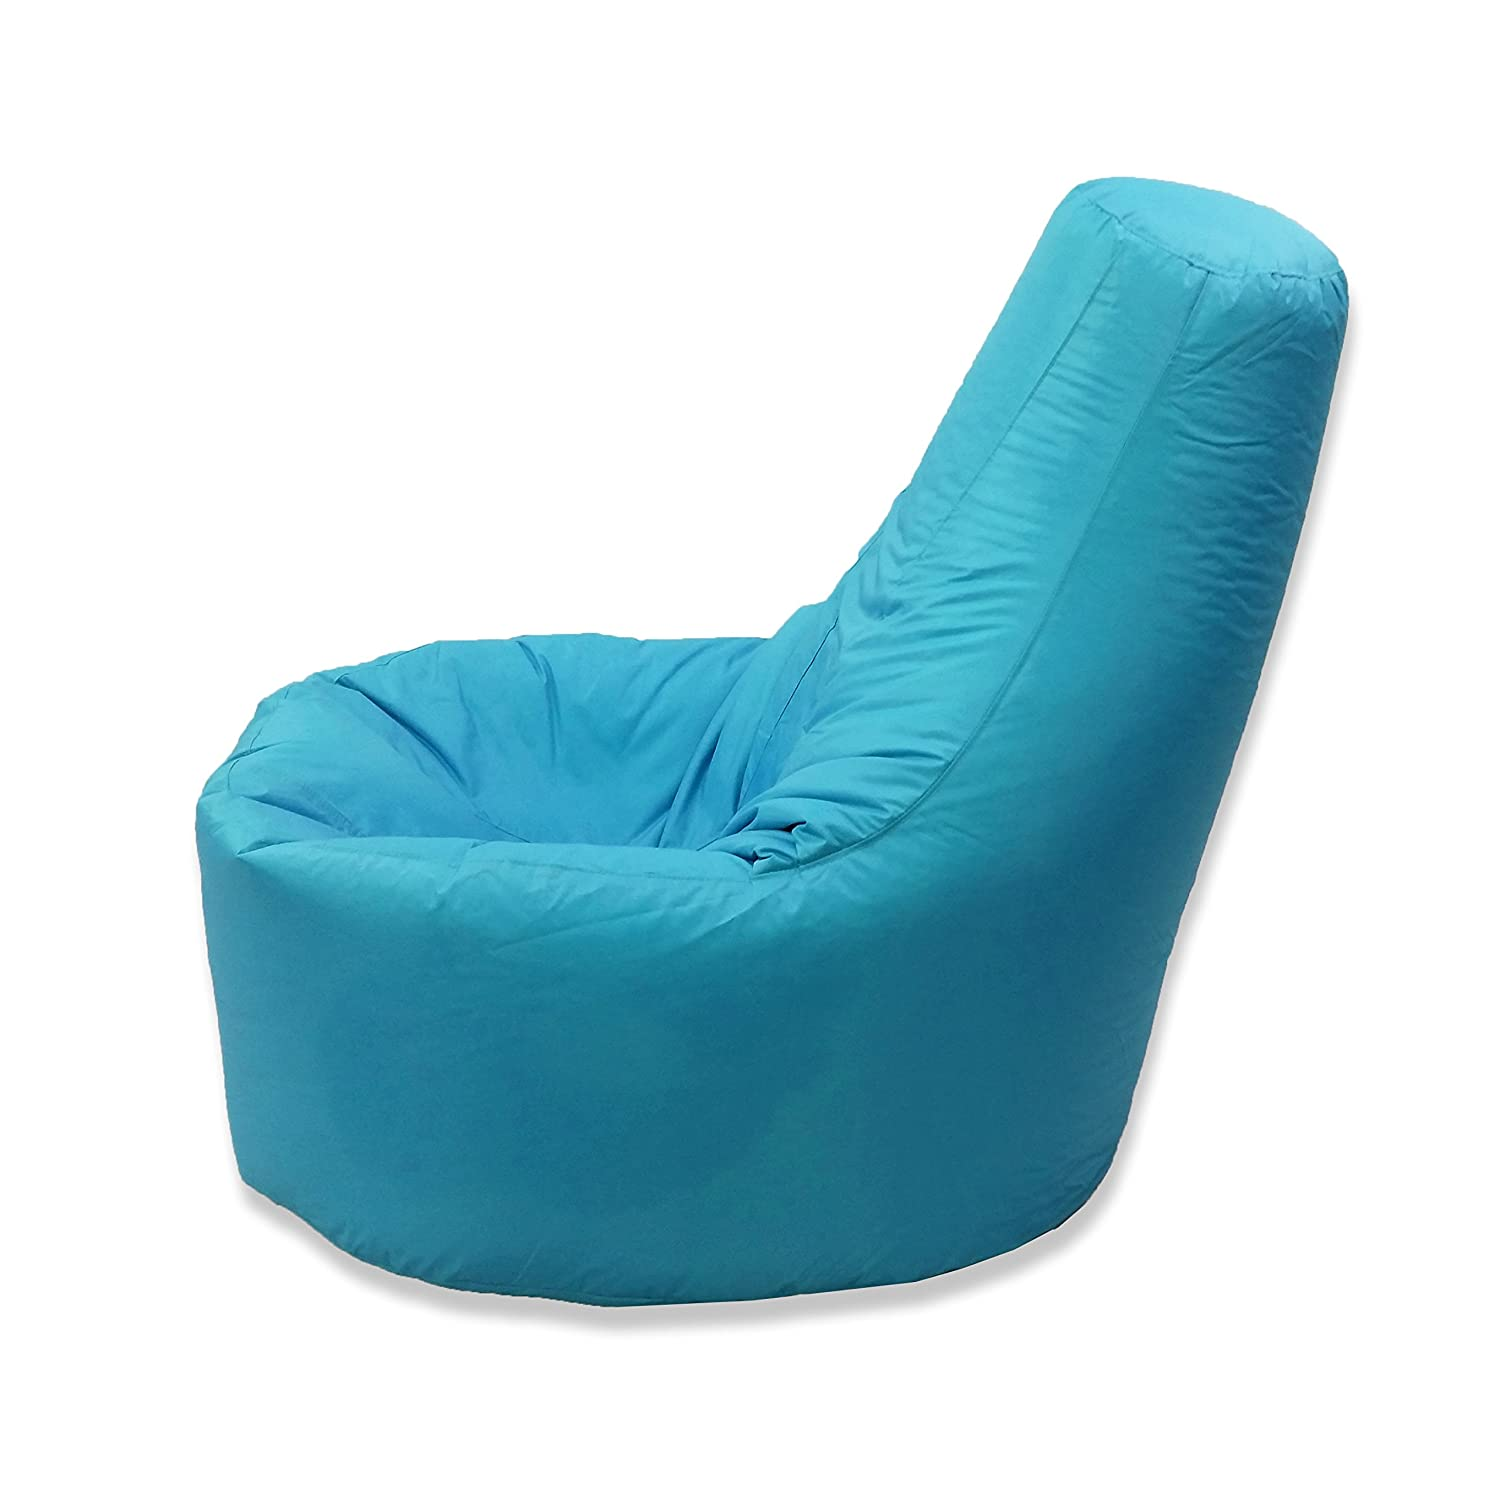 Large Bean Bag Gamer Recliner Outdoor And Indoor Adult Gaming XXL Teal Aqua Blue